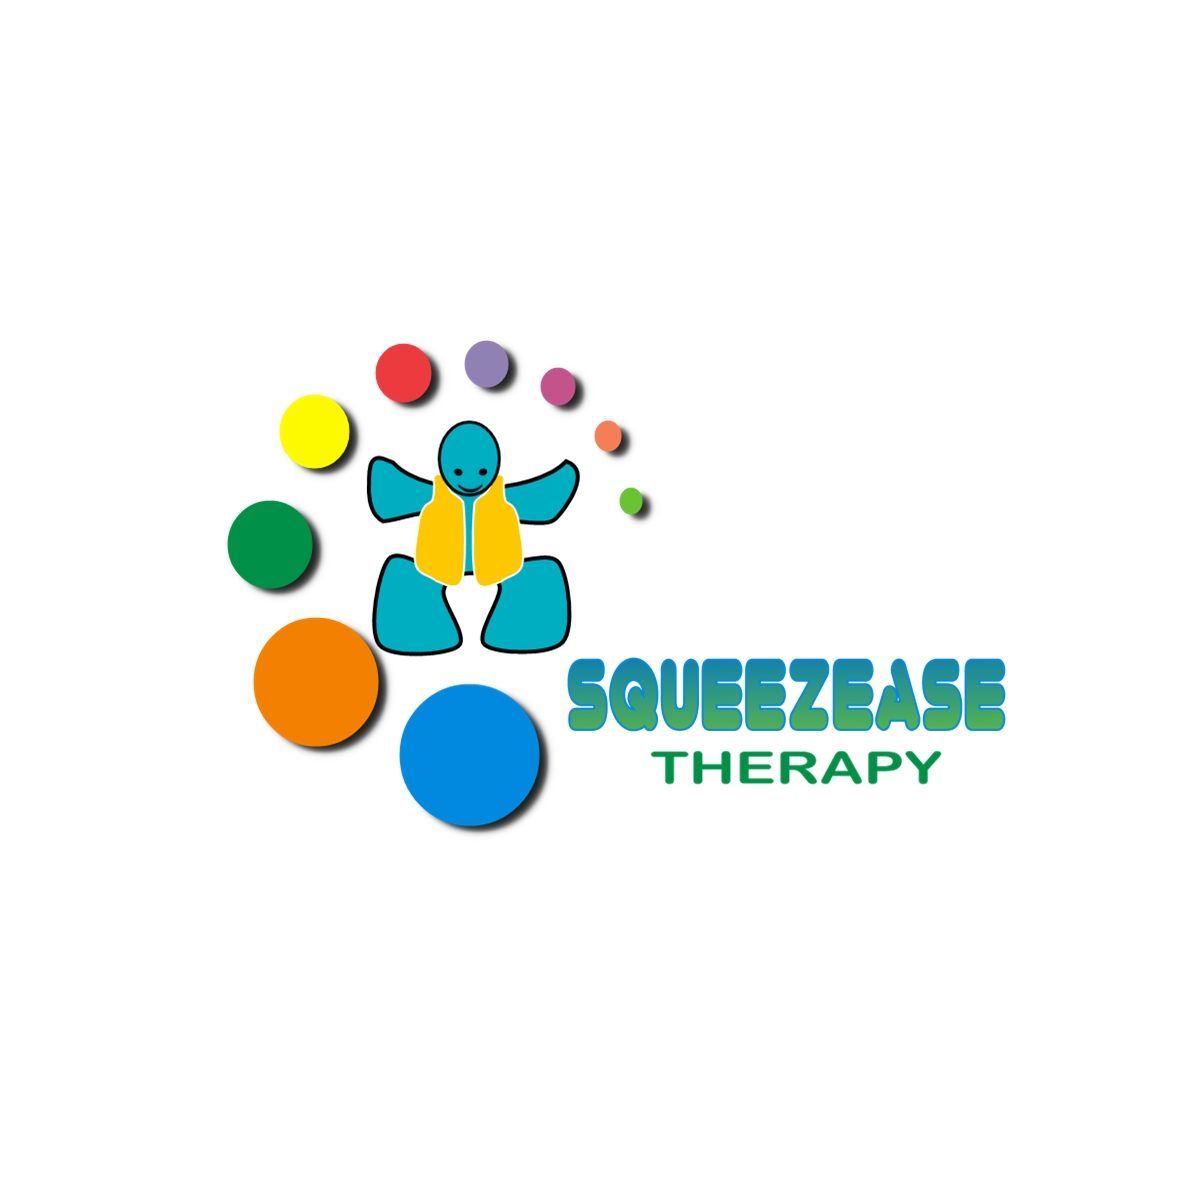 Logo Design by Joseph calunsag Cagaanan - Entry No. 12 in the Logo Design Contest Fun Logo Design for Squeezease Therapy.